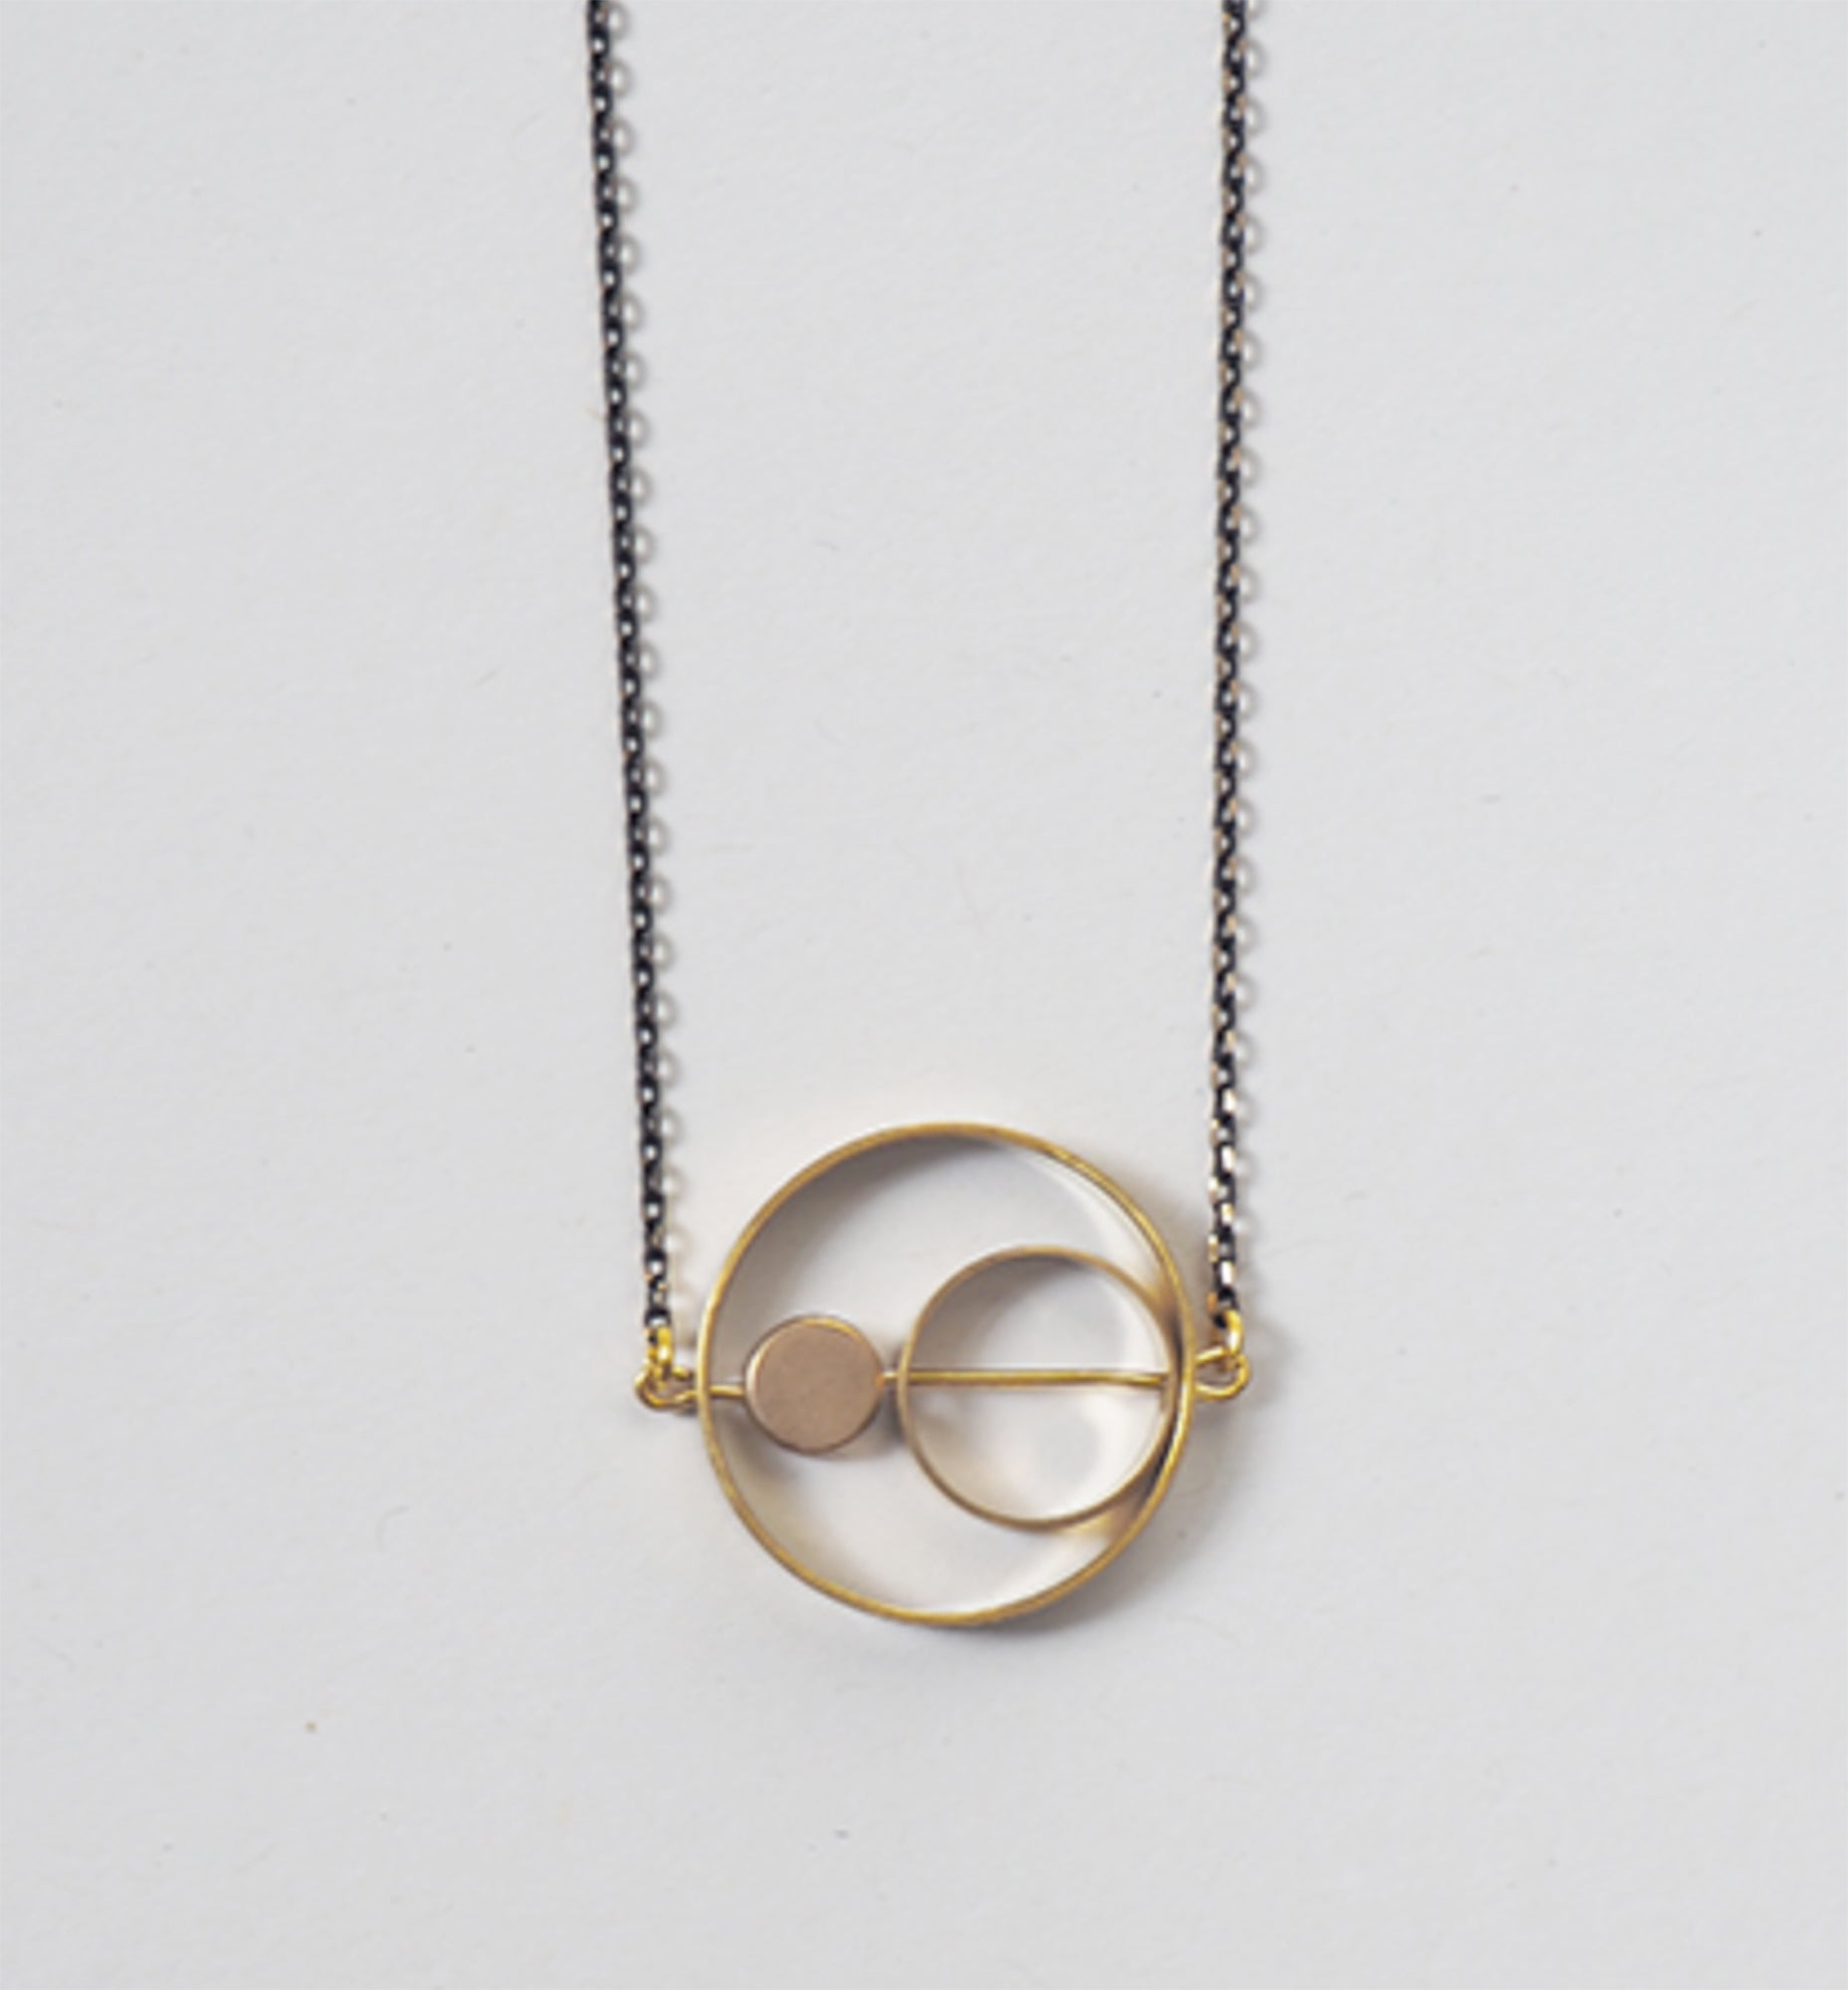 Brass rings within rings necklace